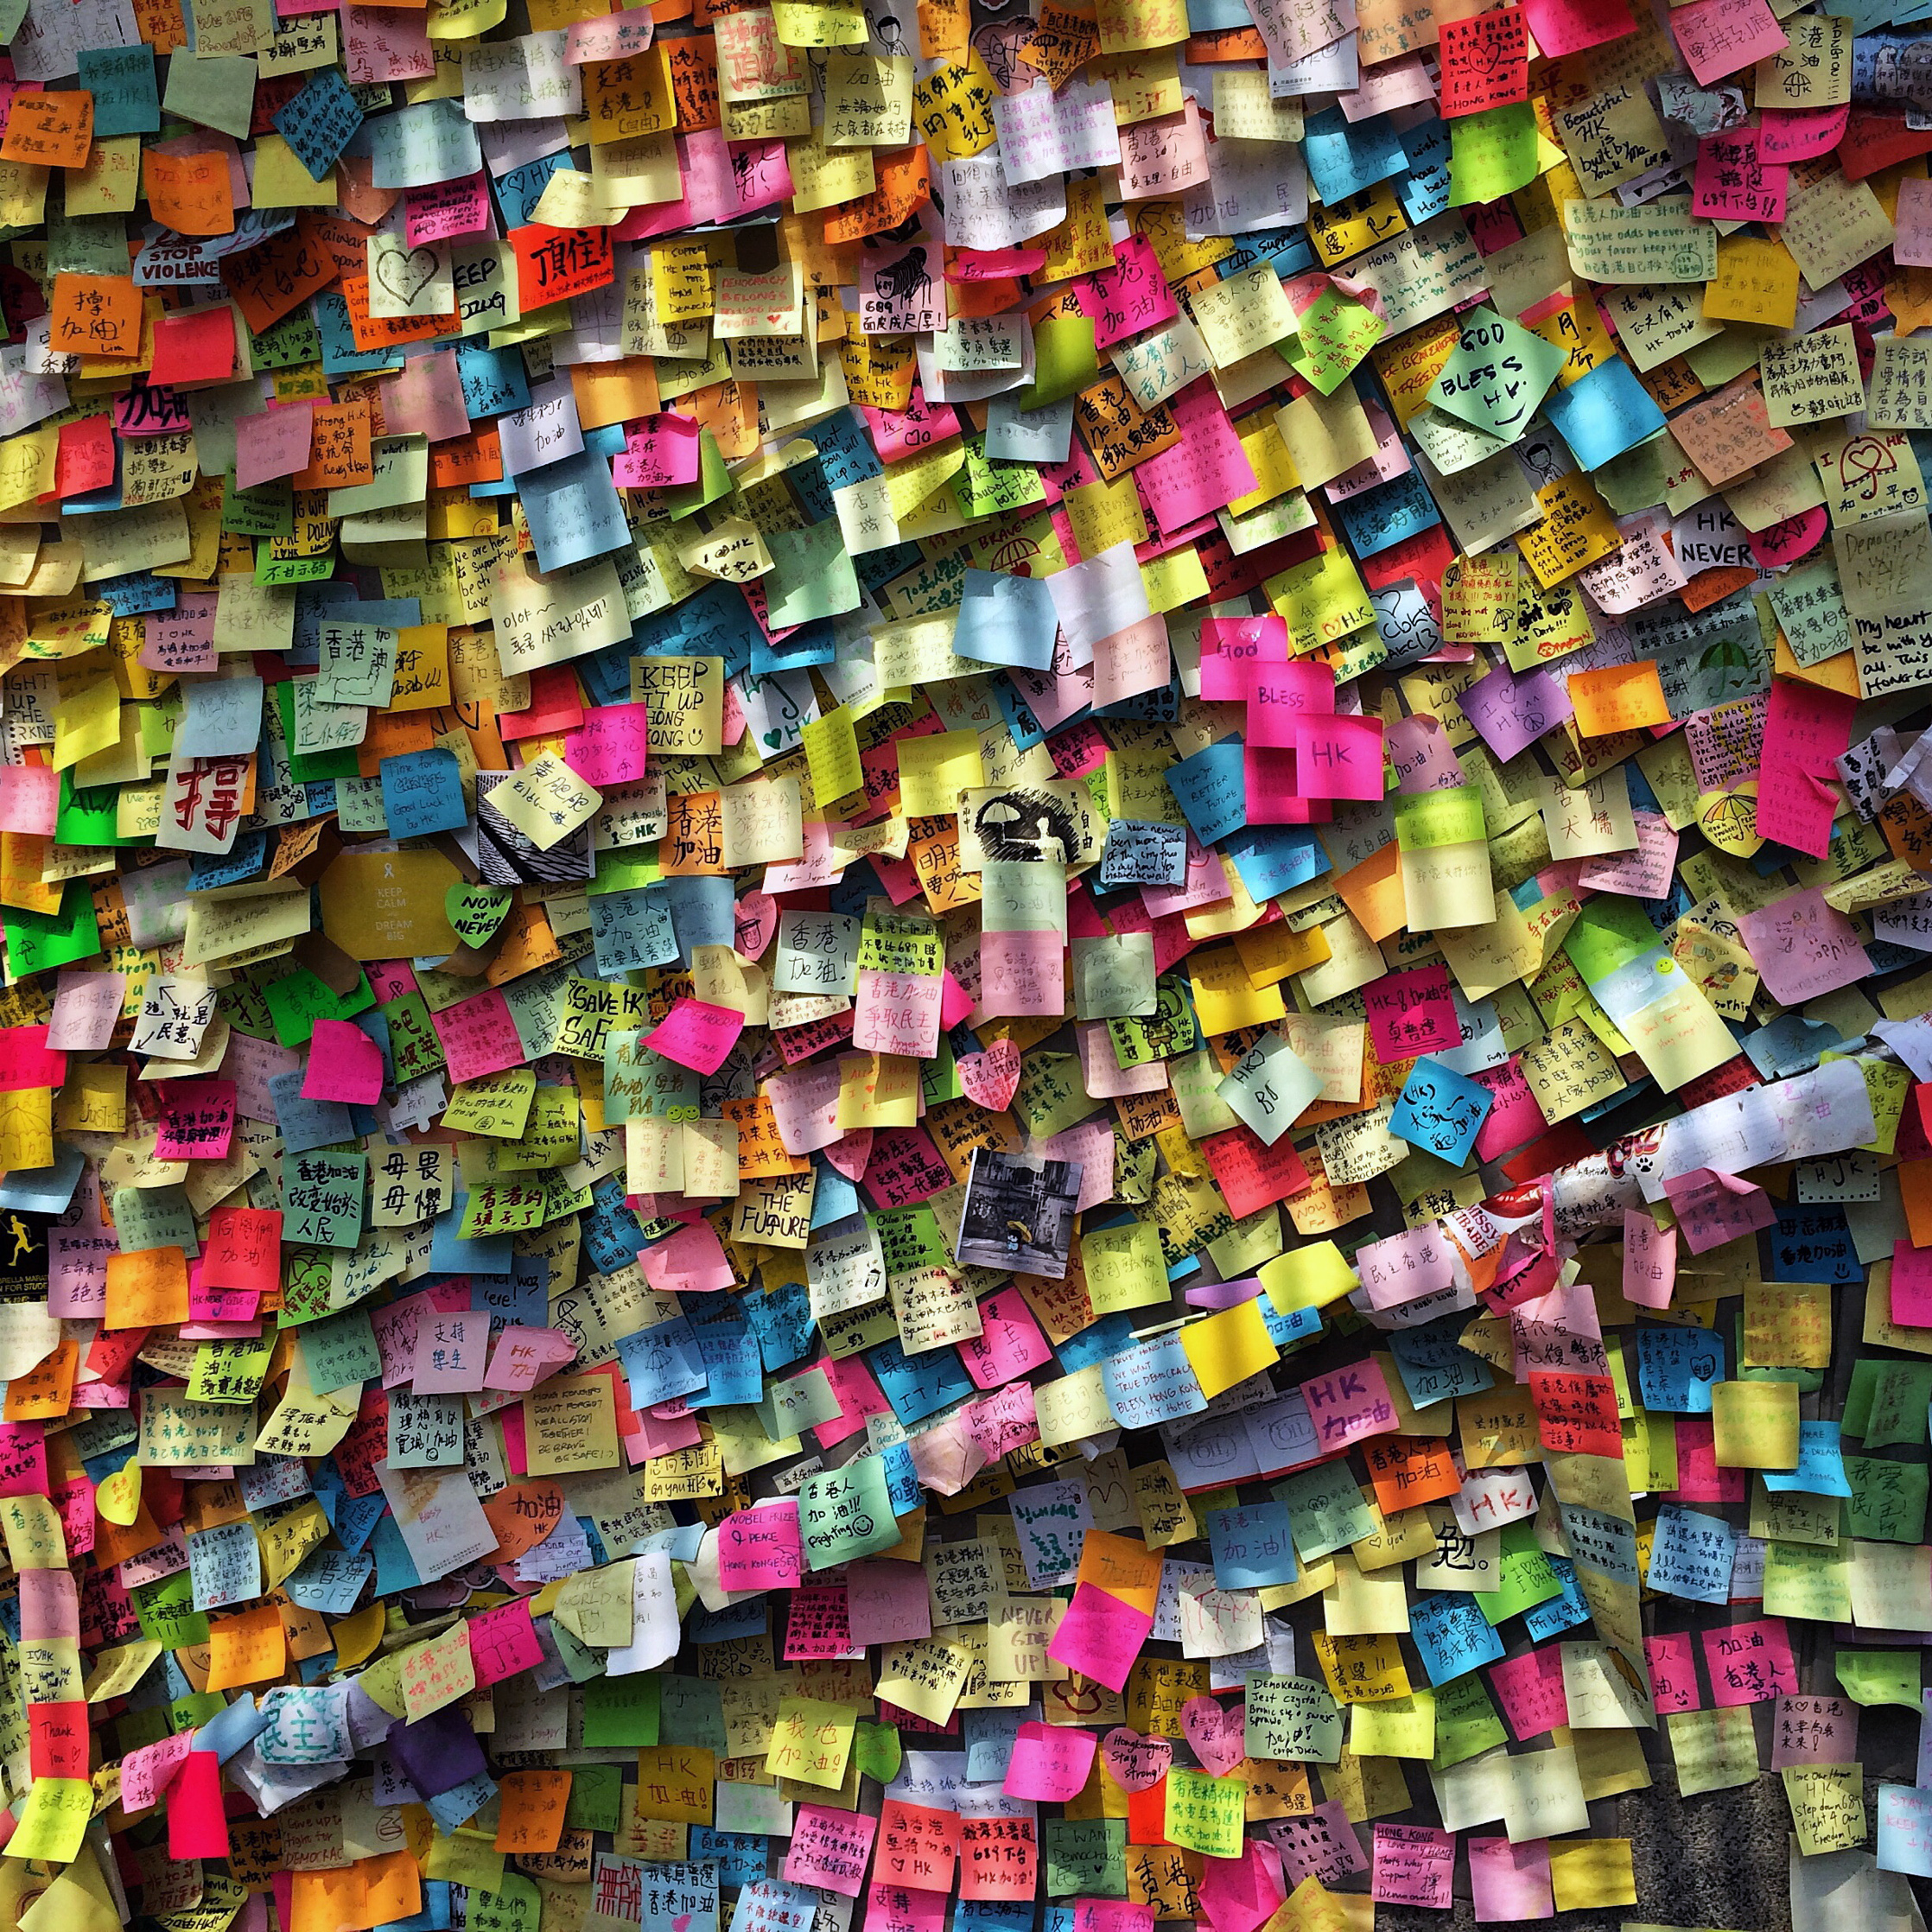 Post it notes of support